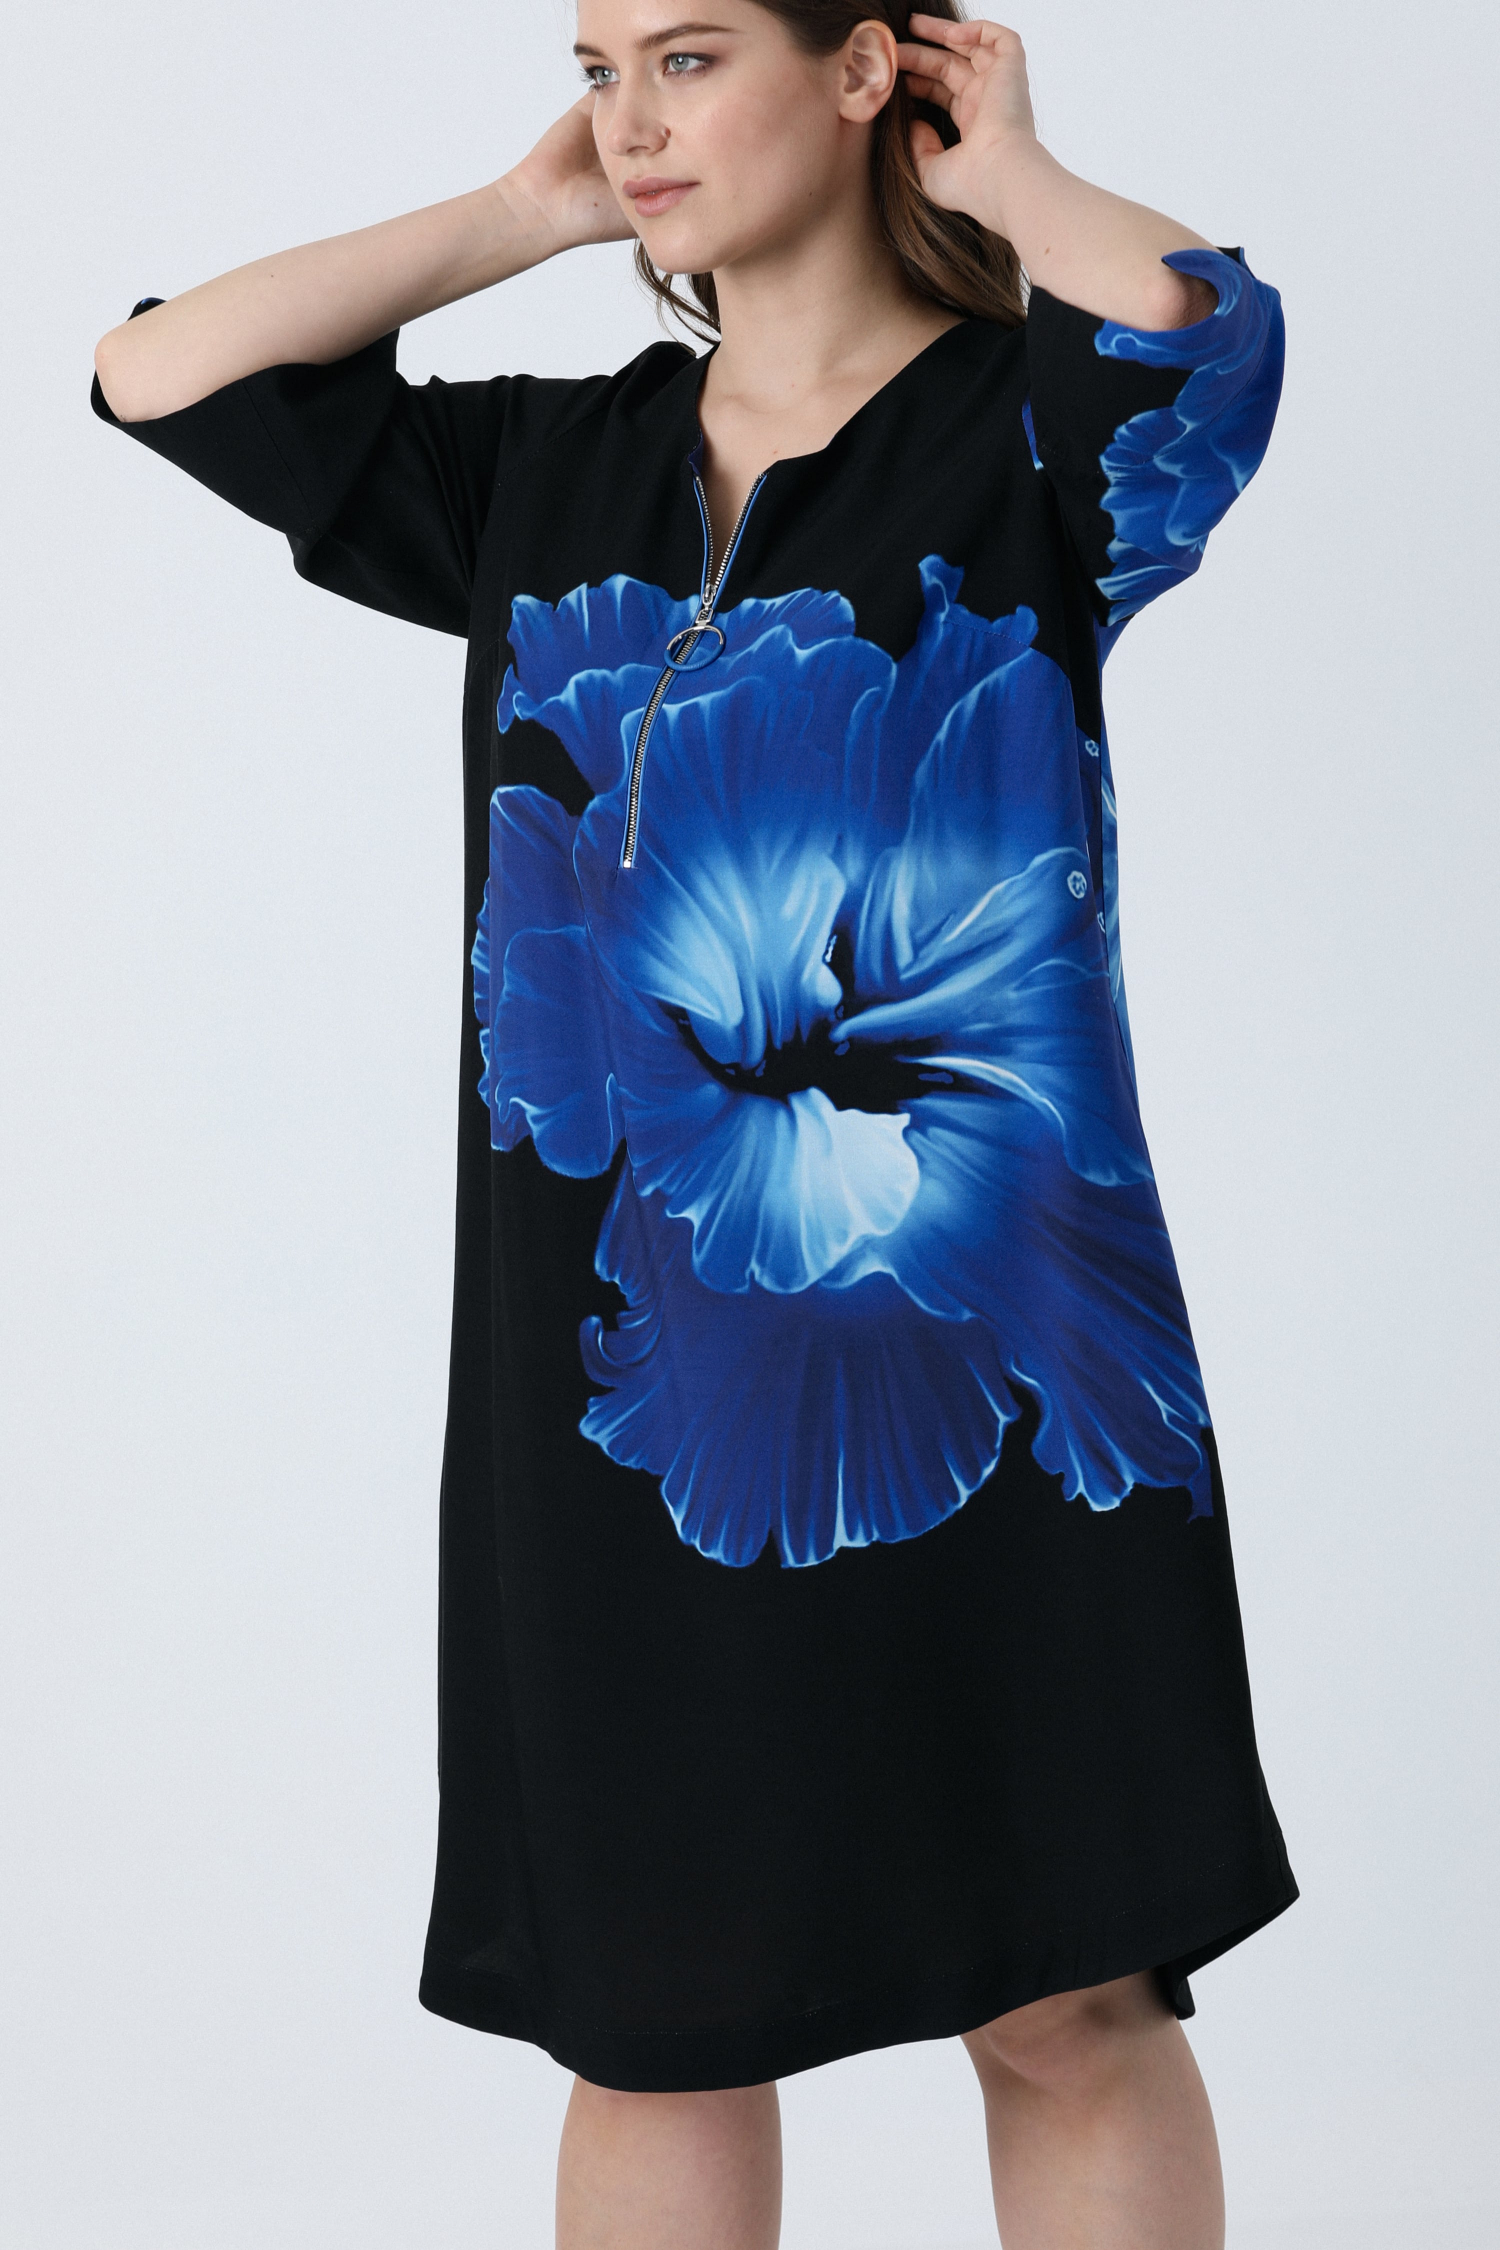 Zipped flower print dress (expedition 5/10 March)